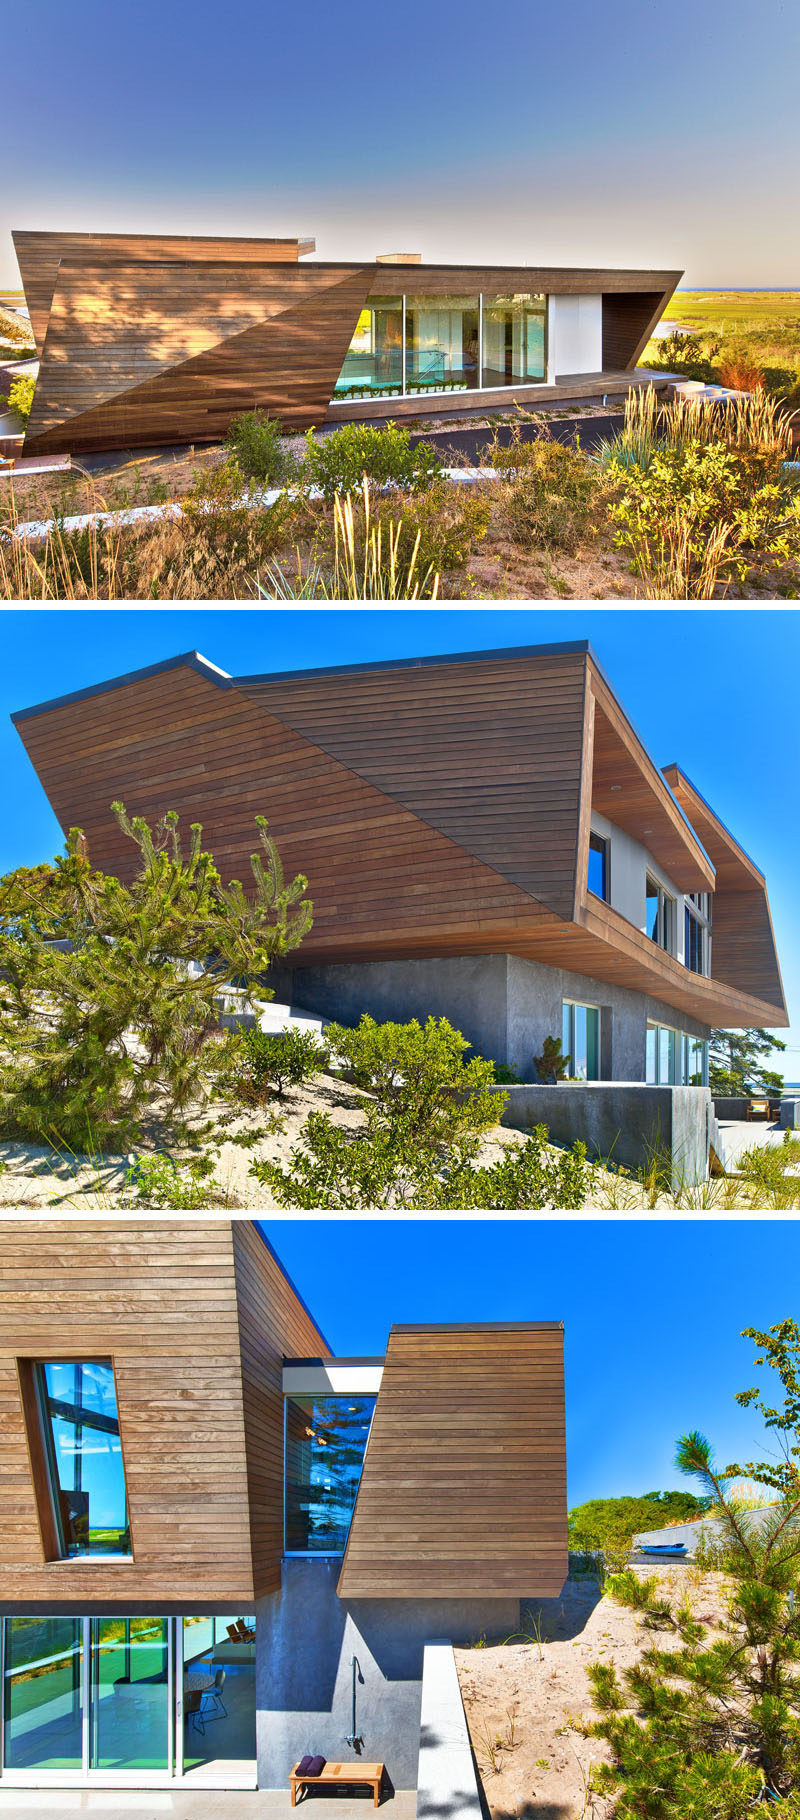 This two-storey wood-clad beach house was designed to fit within the city's 23 ft. height limit for residential houses, and by doing so, the home snugly fits into the sloped site.